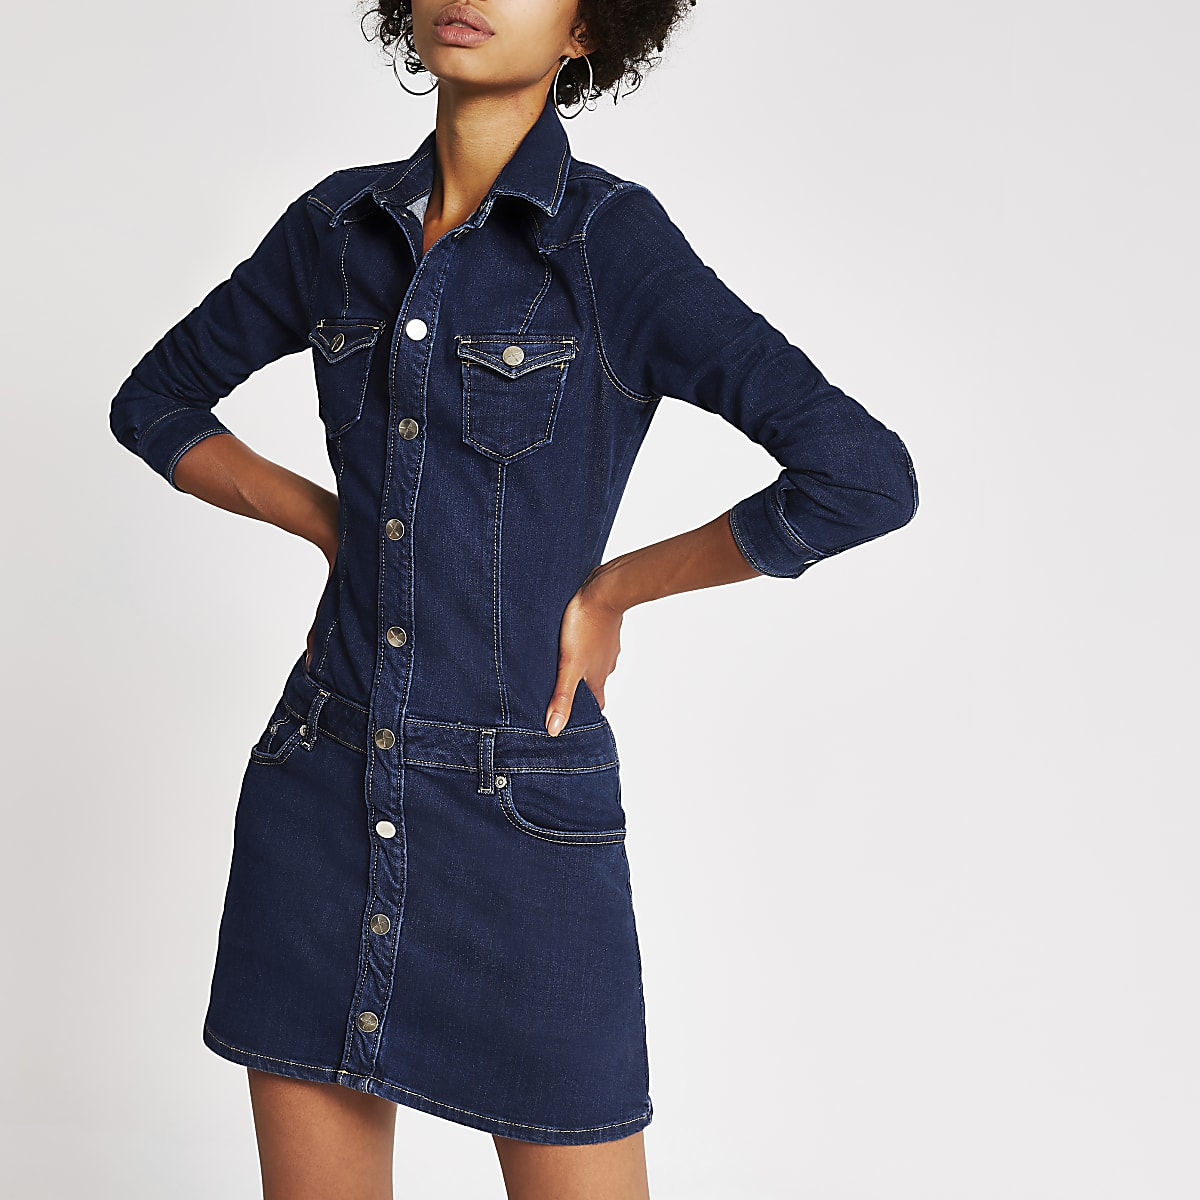 Dua Lipa x Pepe Jeans dark blue denim dress